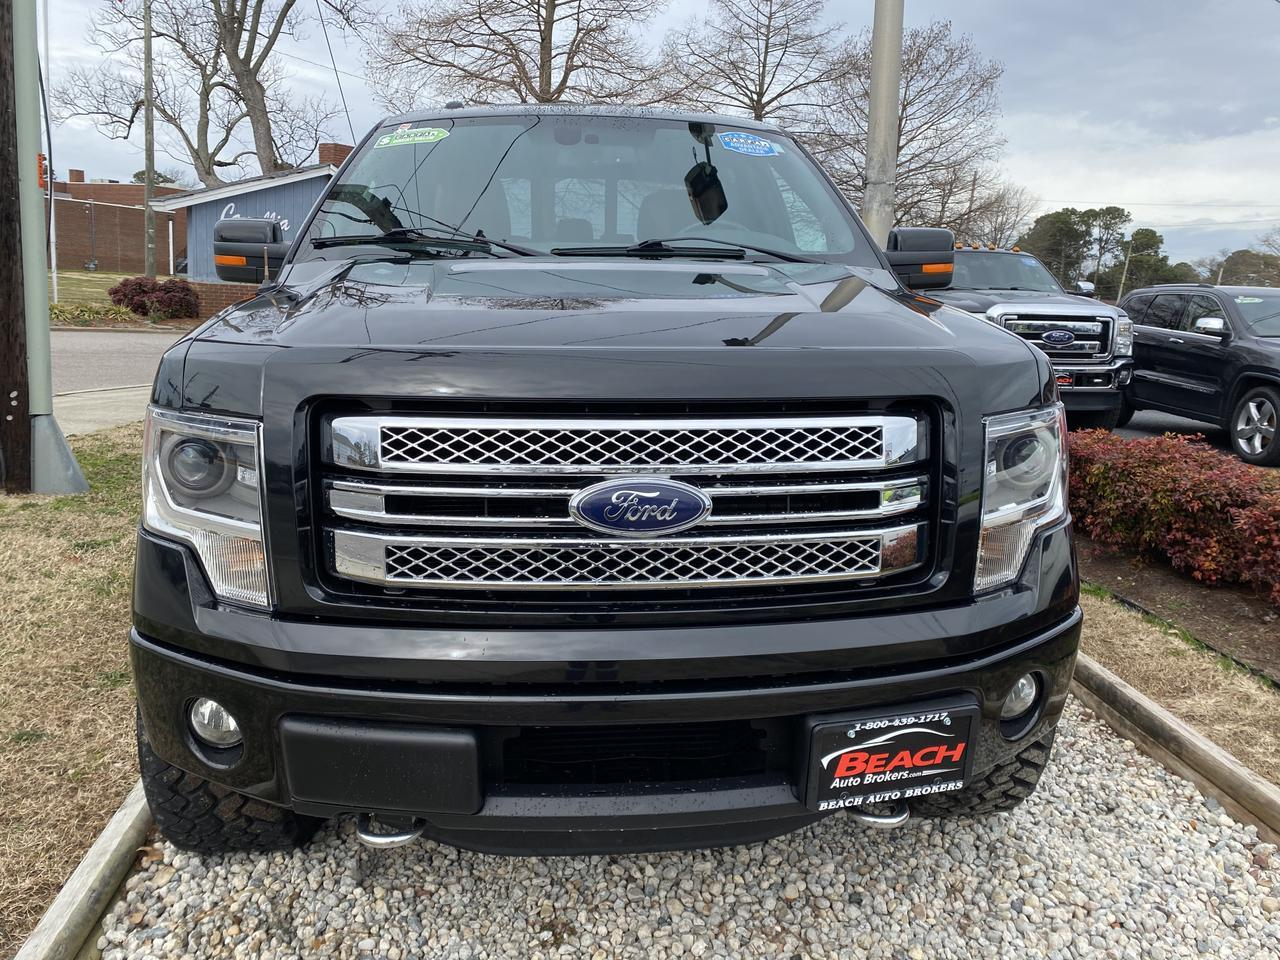 2013 FORD F-150 LIMITED SUPERCREW 4X4, WARRANTY, LEATHER, NAV, HEATED/COOLED SEATS, SUNROOF, BACKUP CAM, CLEAN! Norfolk VA